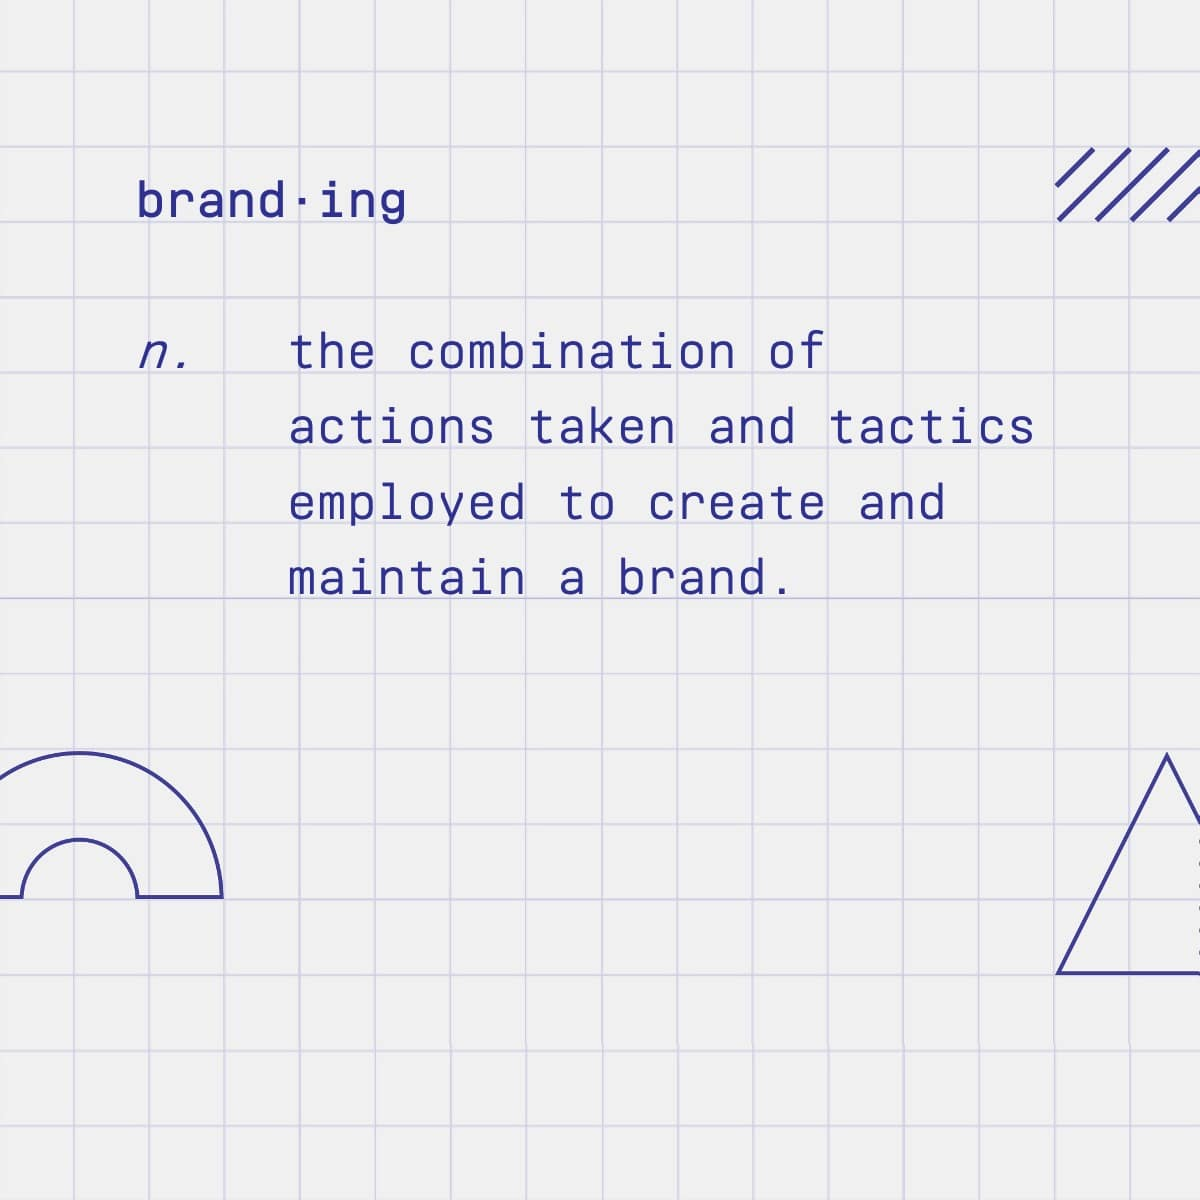 Branding definition on How Brands Are Built